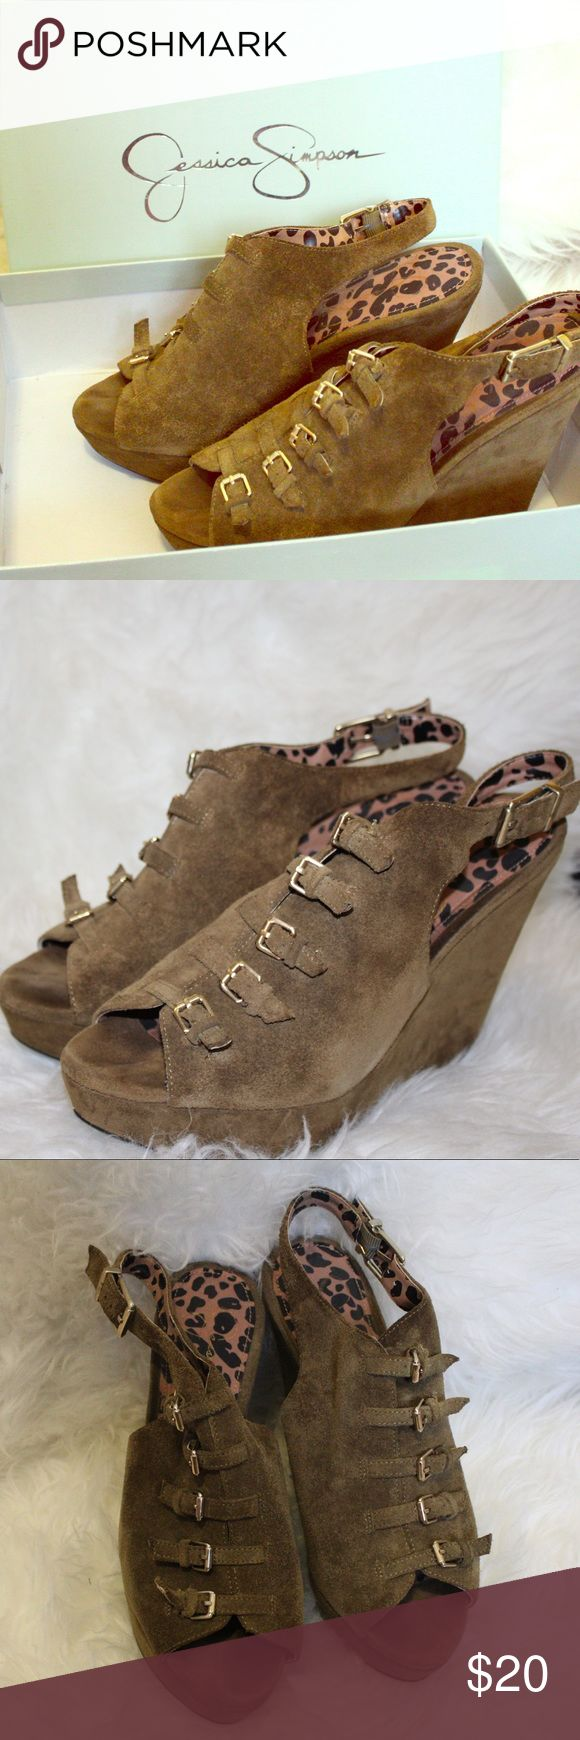 Jessica Simpson Aged Bronze wedges Suede Bronze/Moss Green Jessica Simpson wedges. Gently Used. Jessica Simpson Shoes Wedges